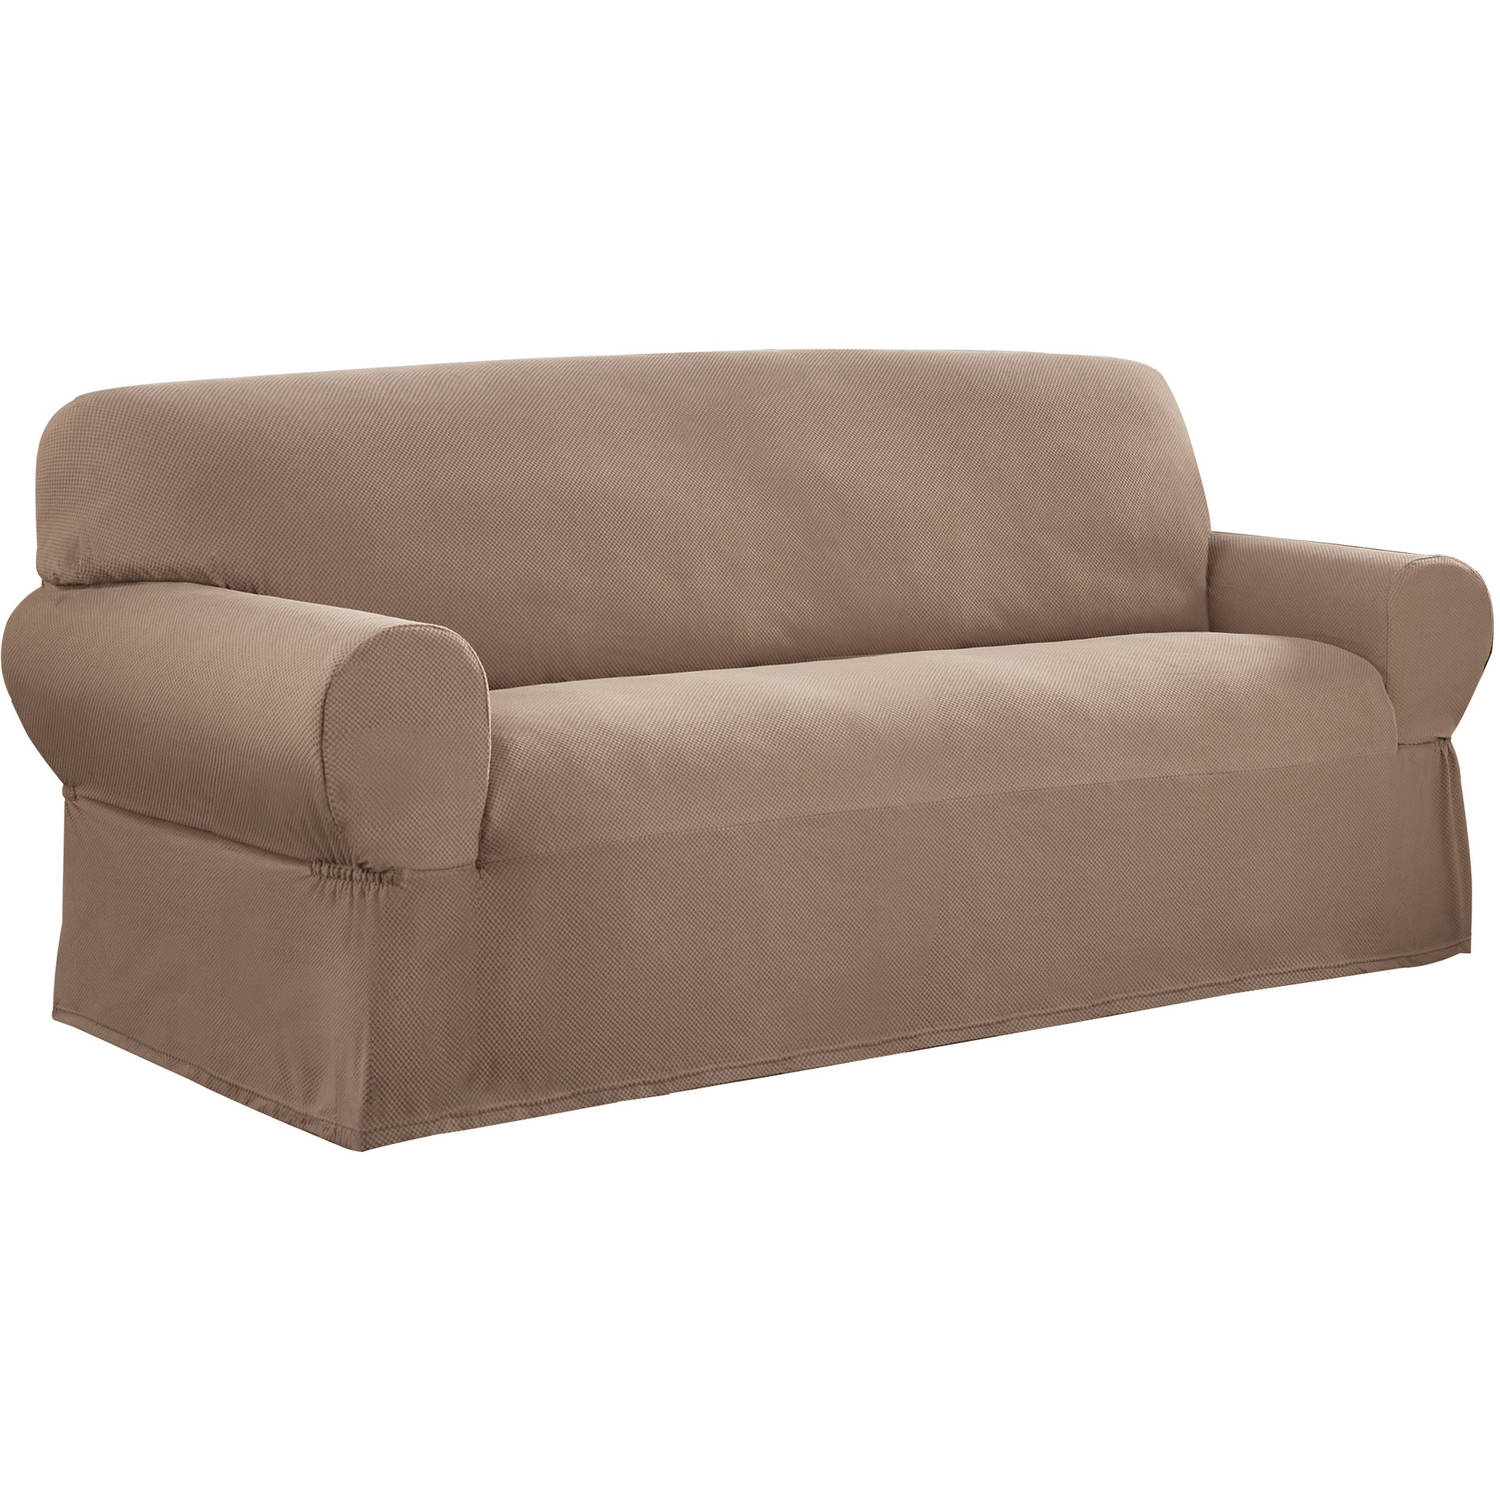 3 Piece Sectional Sofa With Chaise Slipcover 12 Best Ideas Of 3 Piece Sectional Sofa Slipcovers